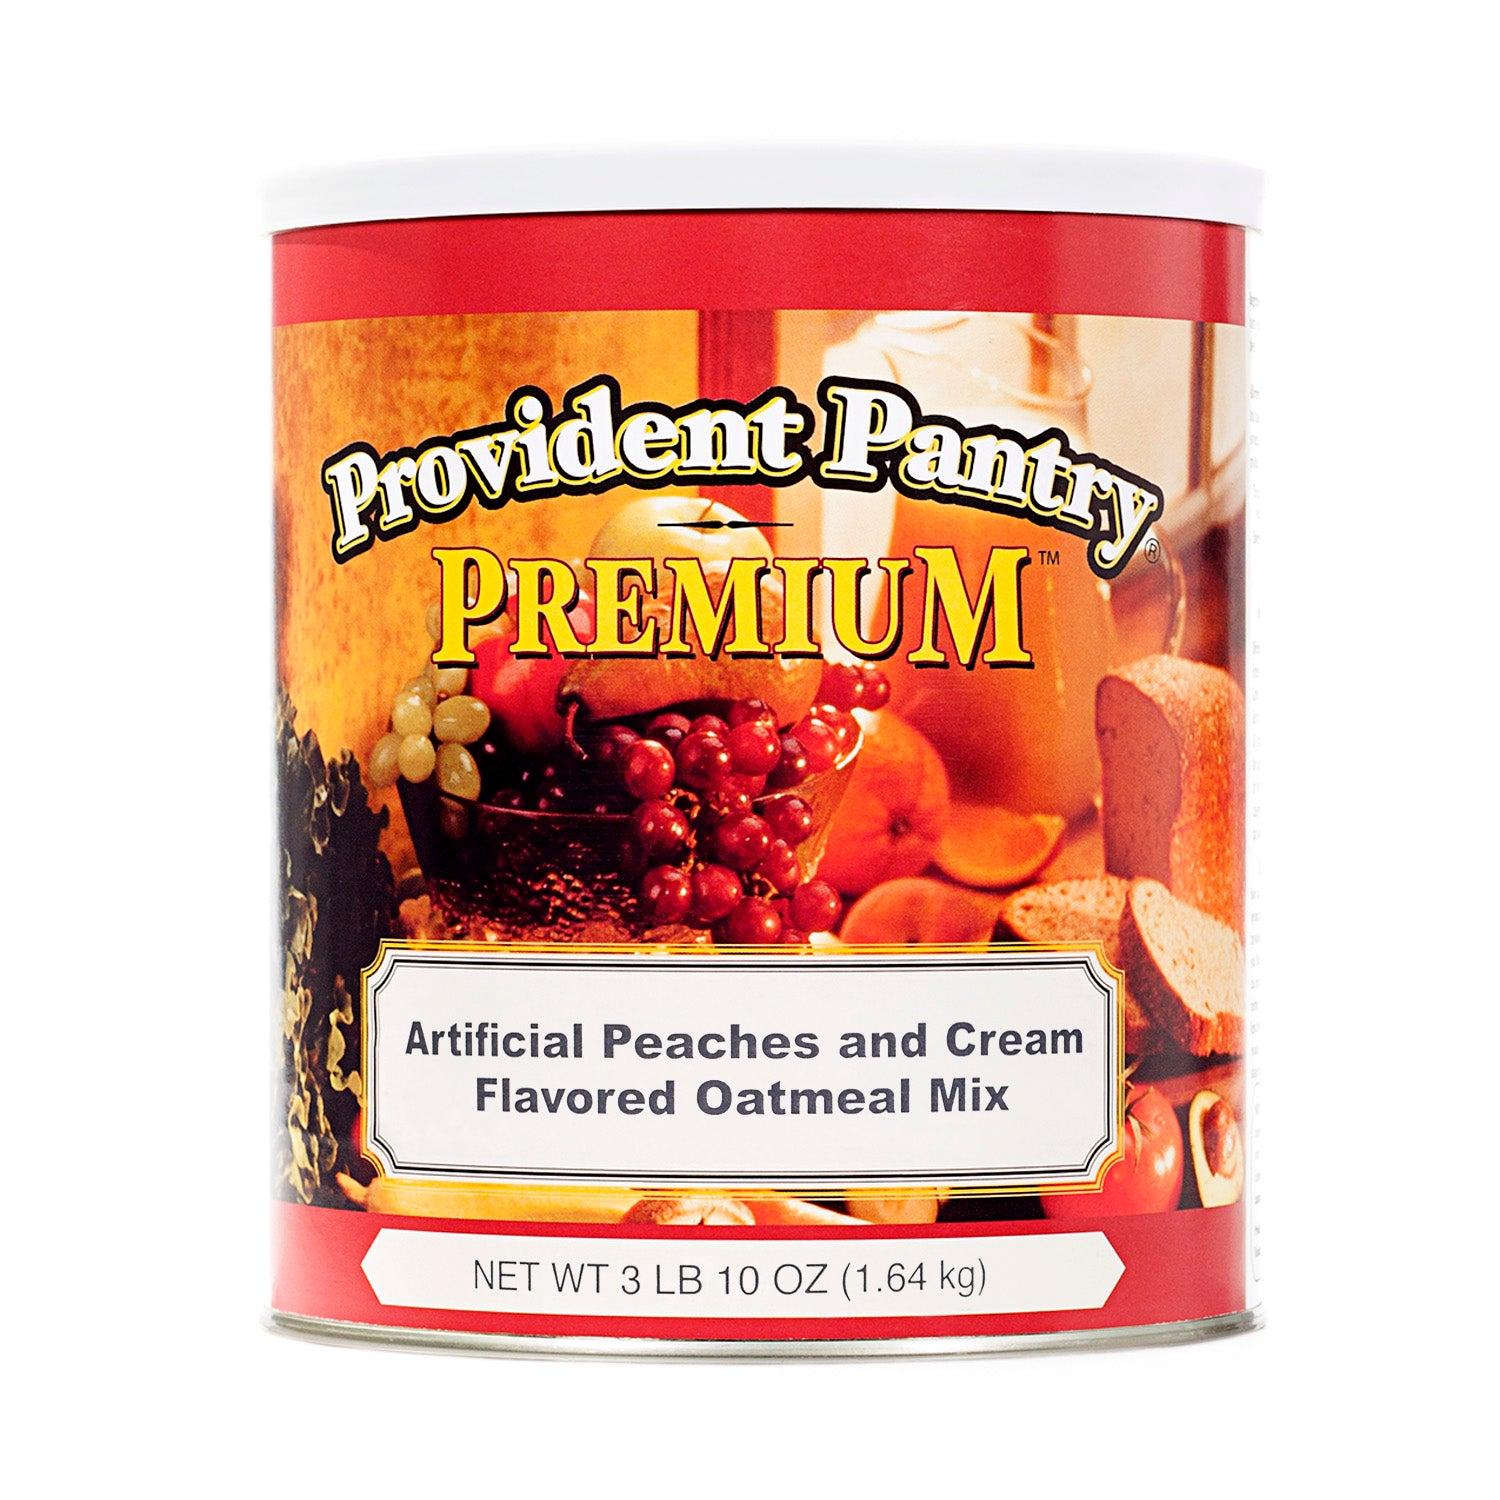 New Products: Peaches and Cream Oatmeal